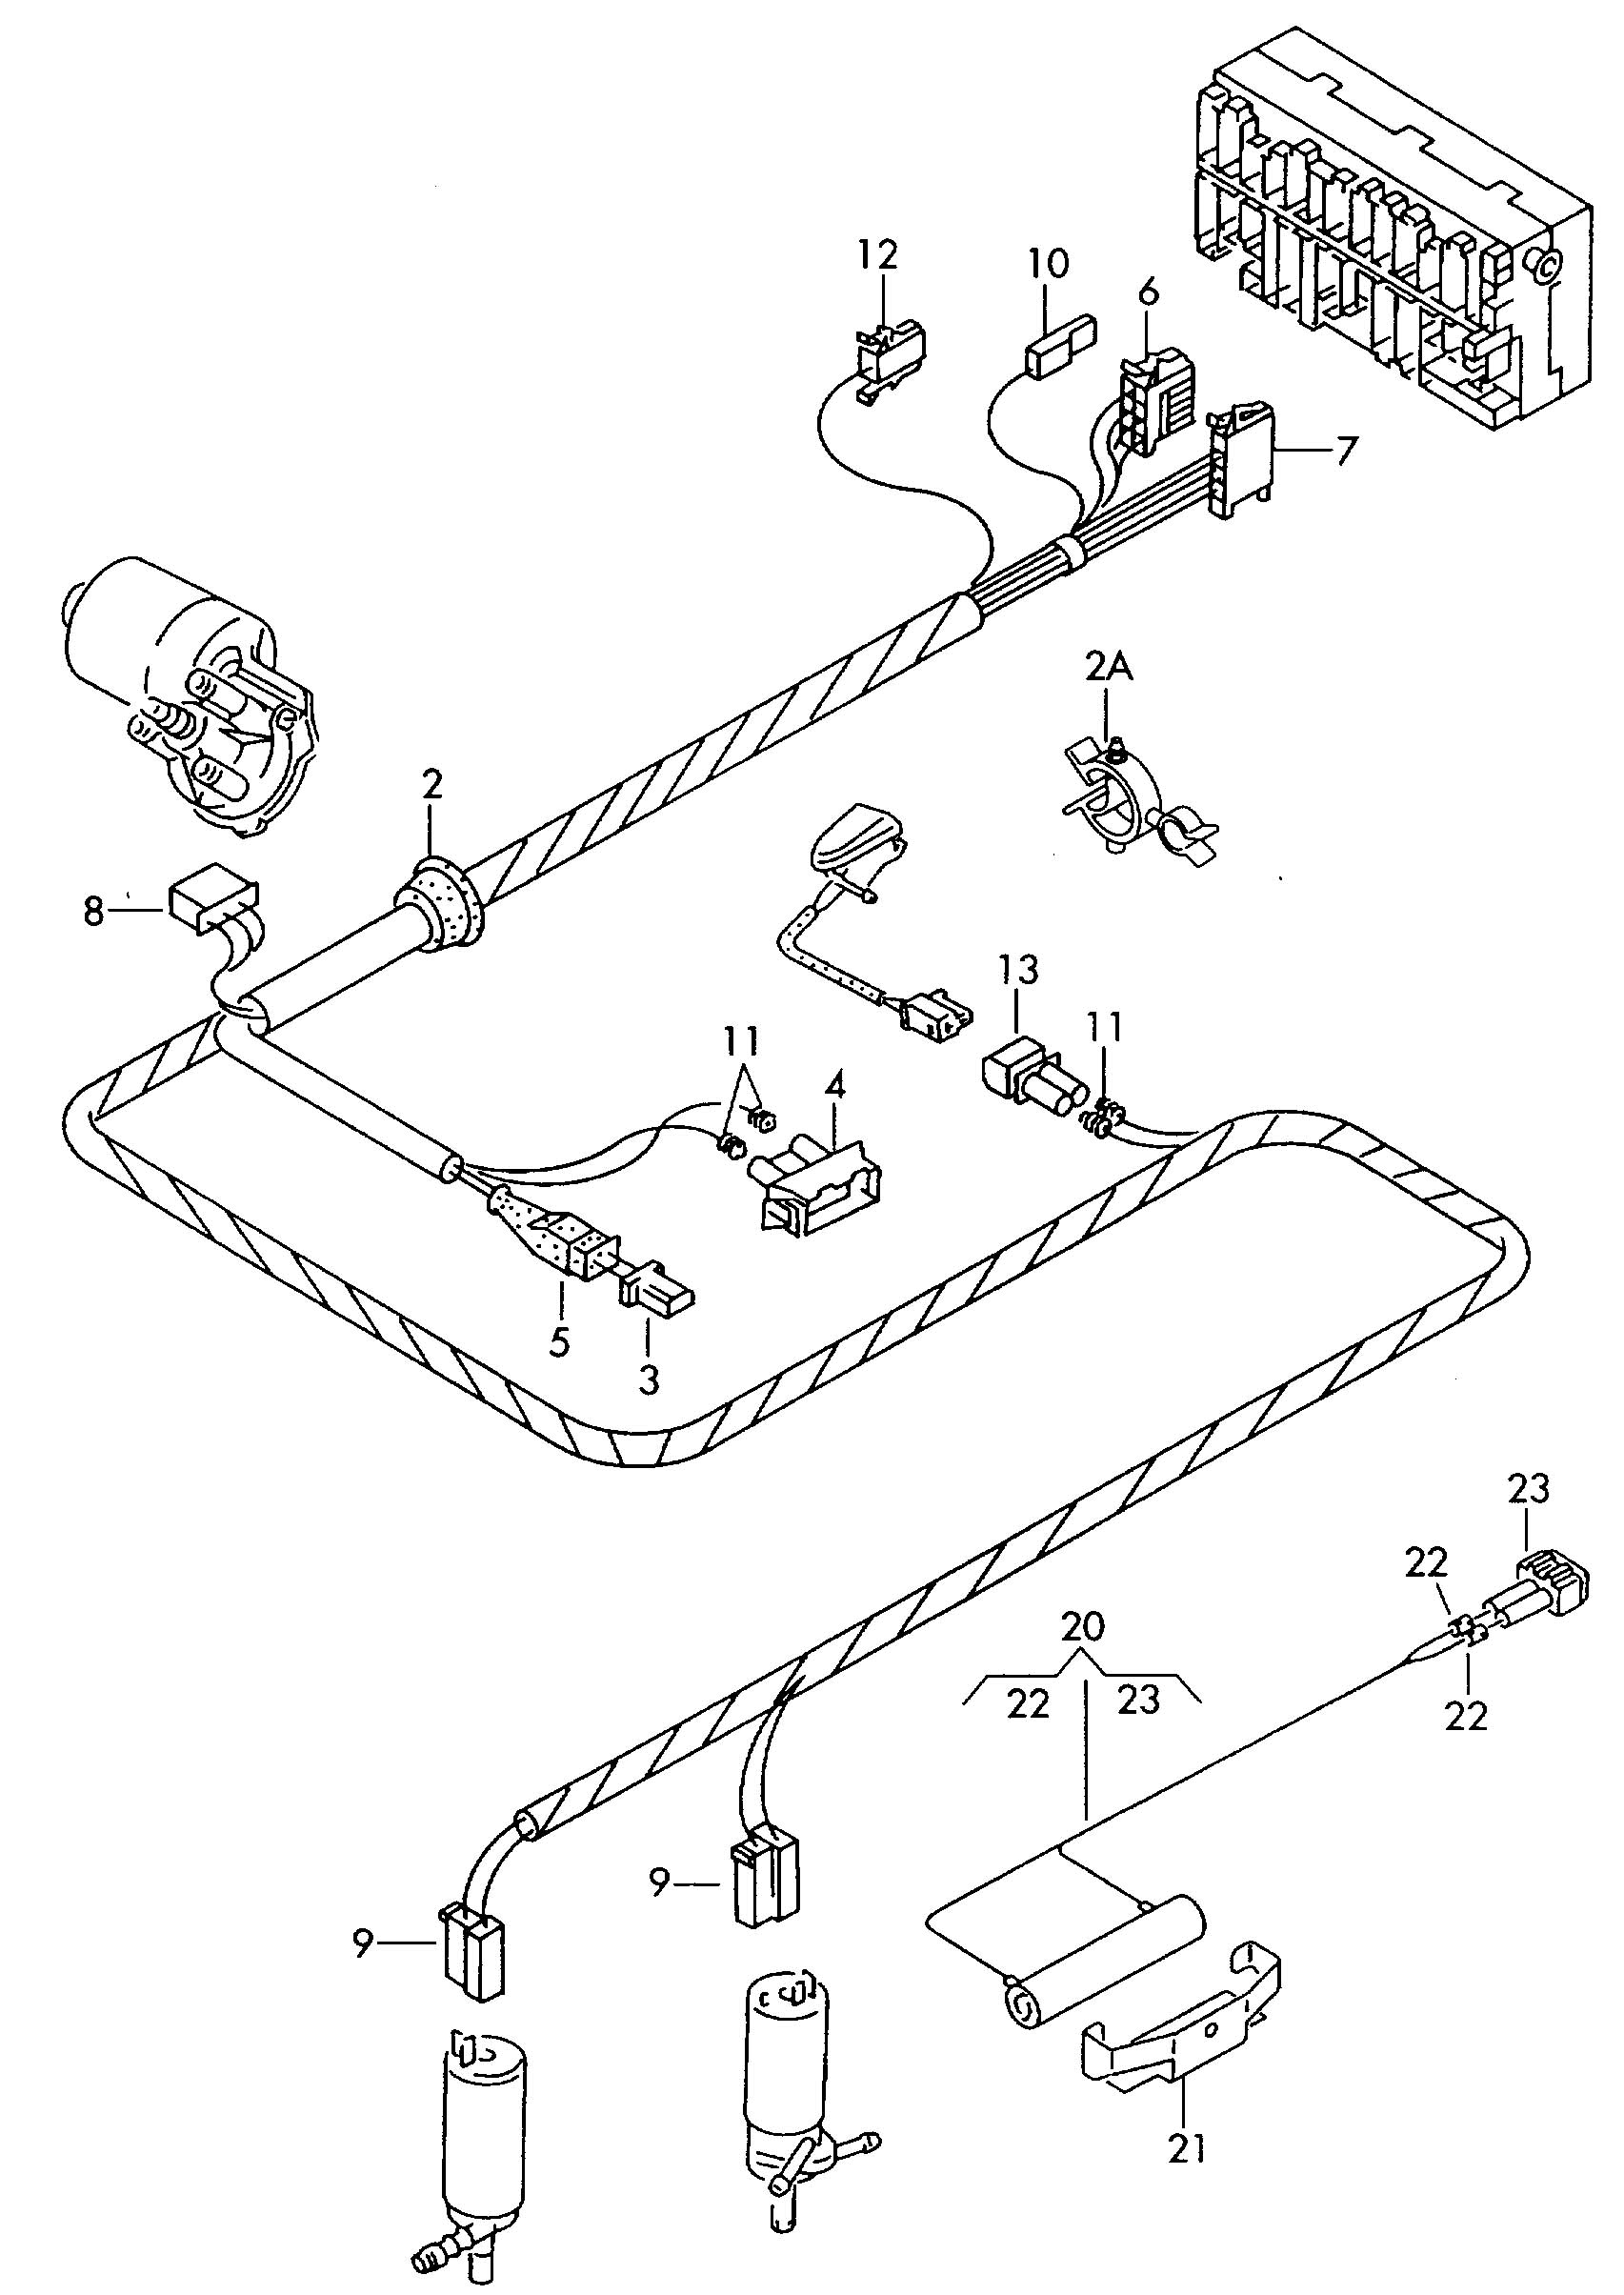 Vw Eurovan Door Wiring Harness VW Engine Wiring Wiring